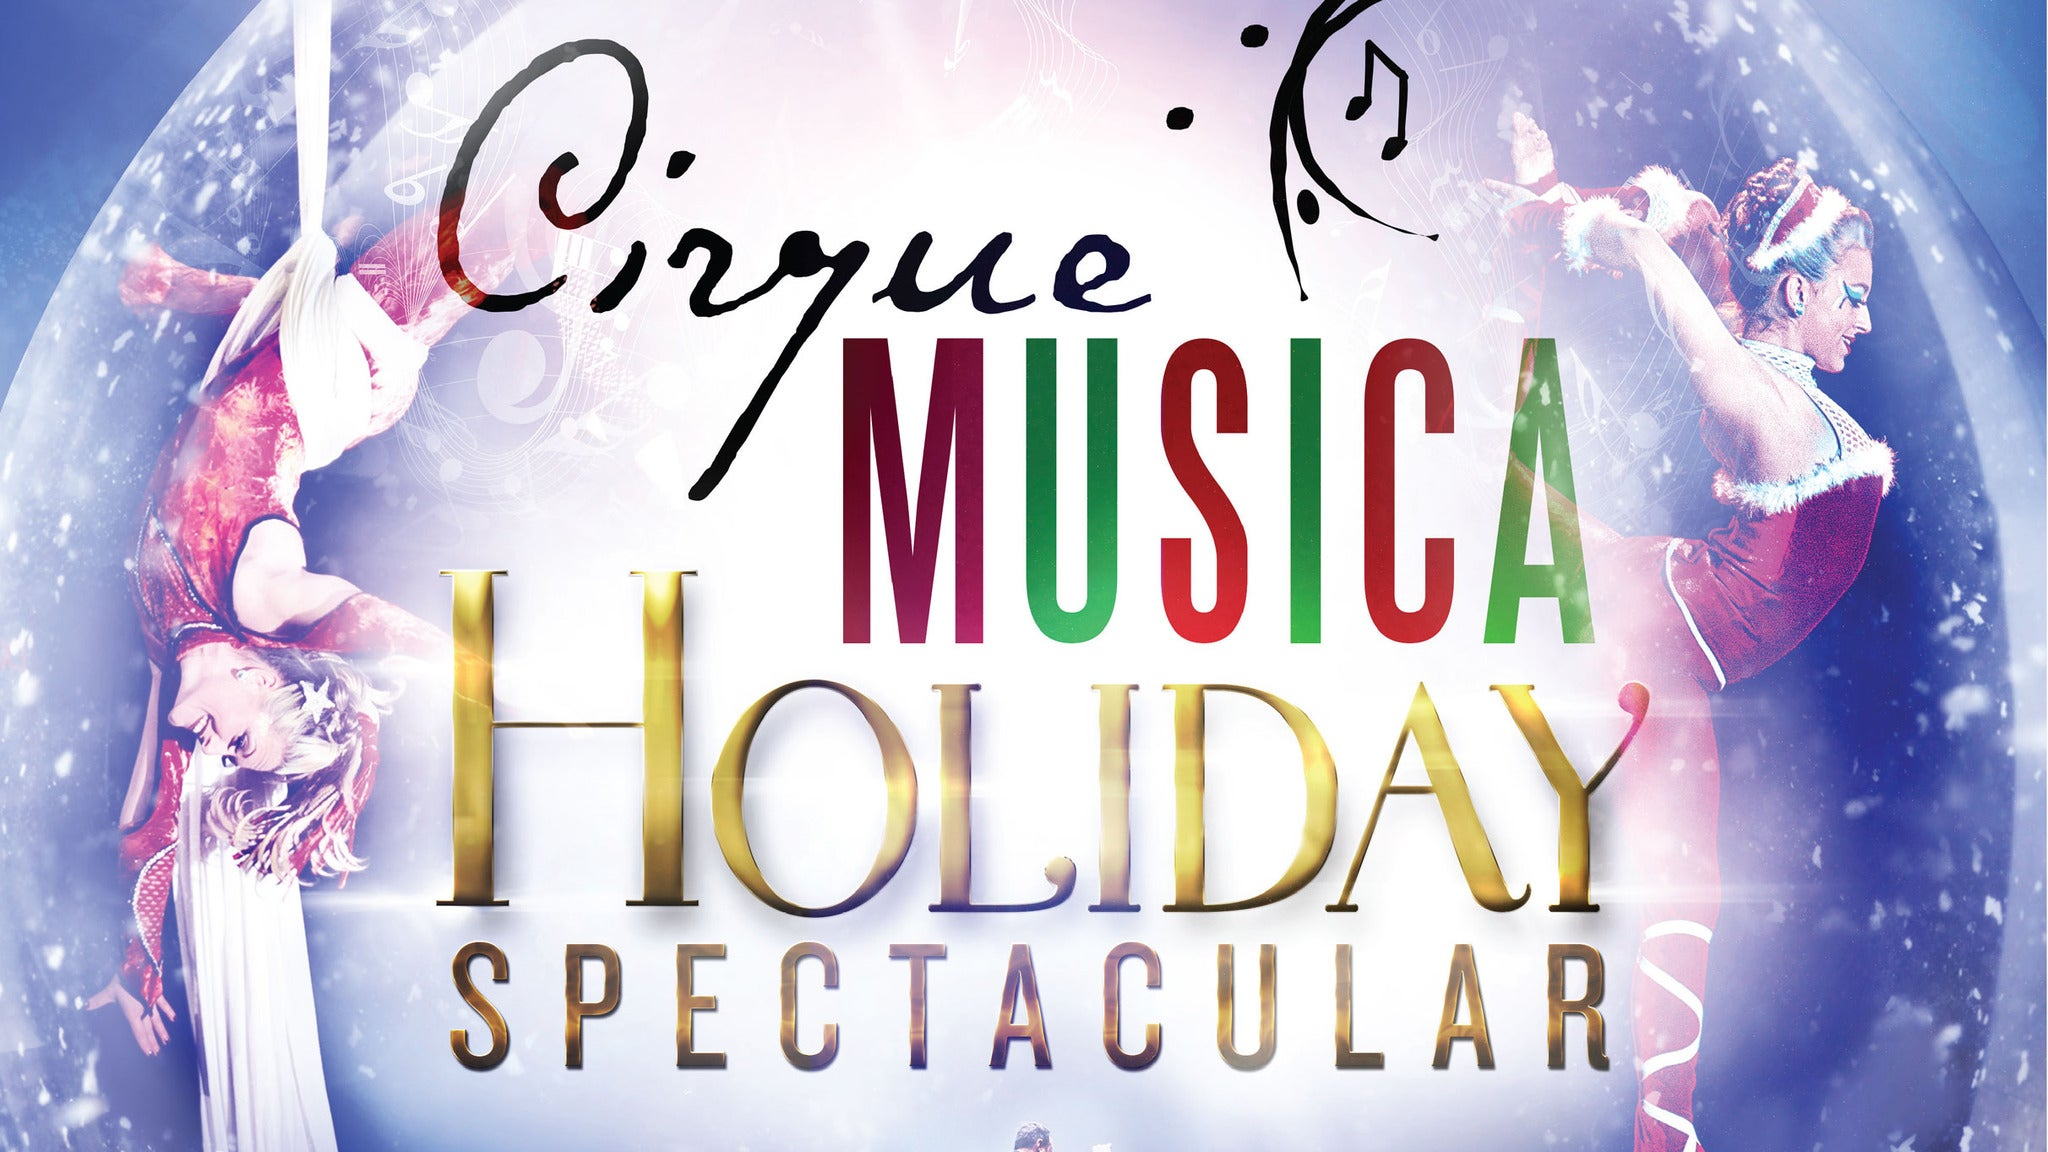 Cirque Musica Holiday Spectacular at Amalie Arena